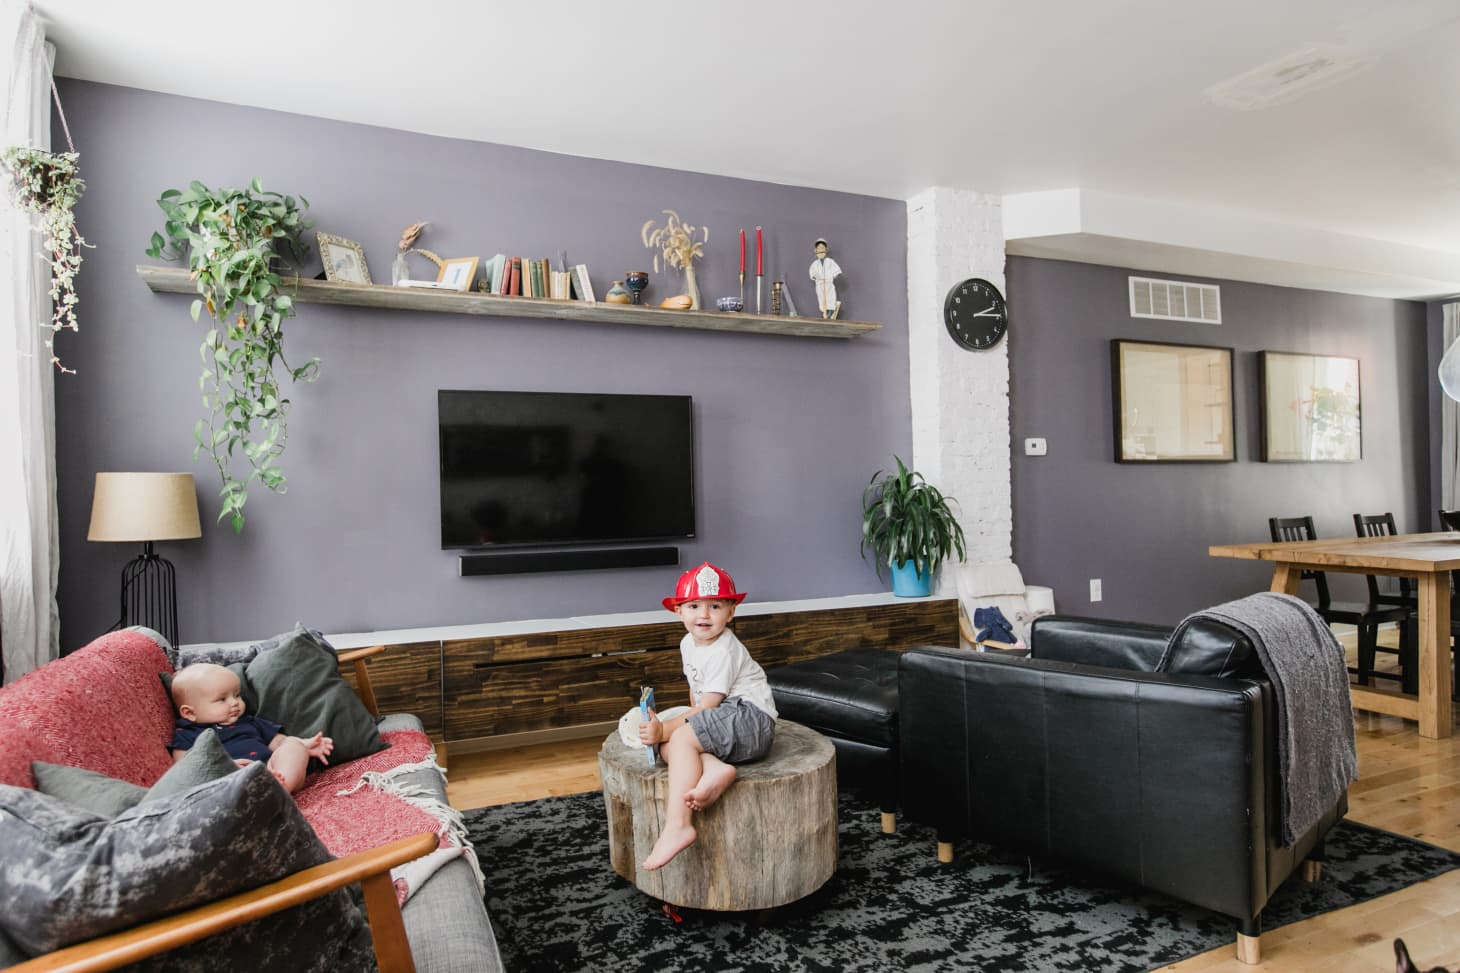 We Found the Best Purple Paint Color for Interiors | Apartment Therapy